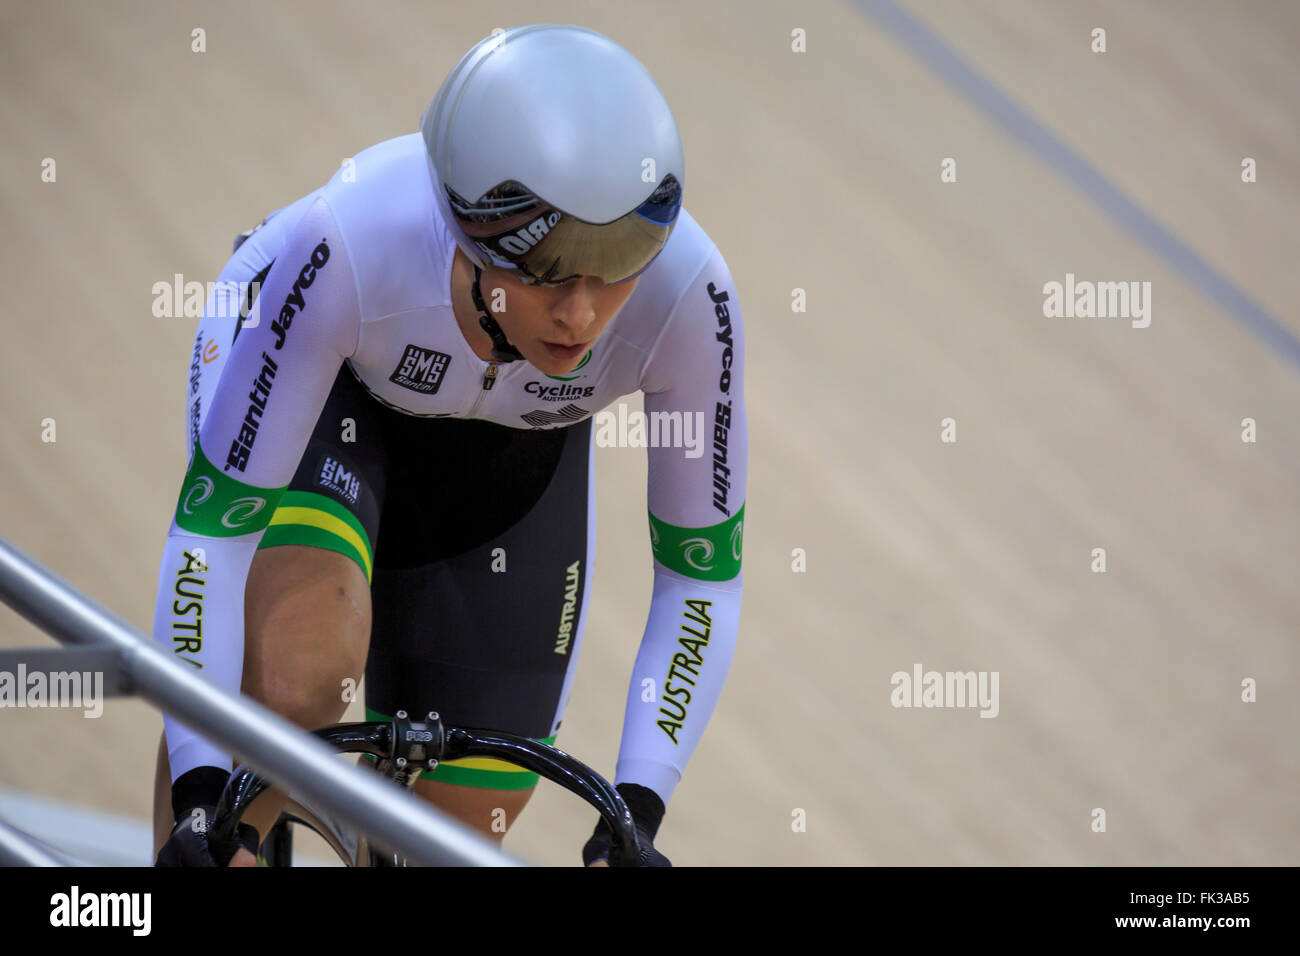 London, UK, 6 March 2016. UCI 2016 Track Cycling World Championships. Australia's Annette Edmondson competes - Stock Image